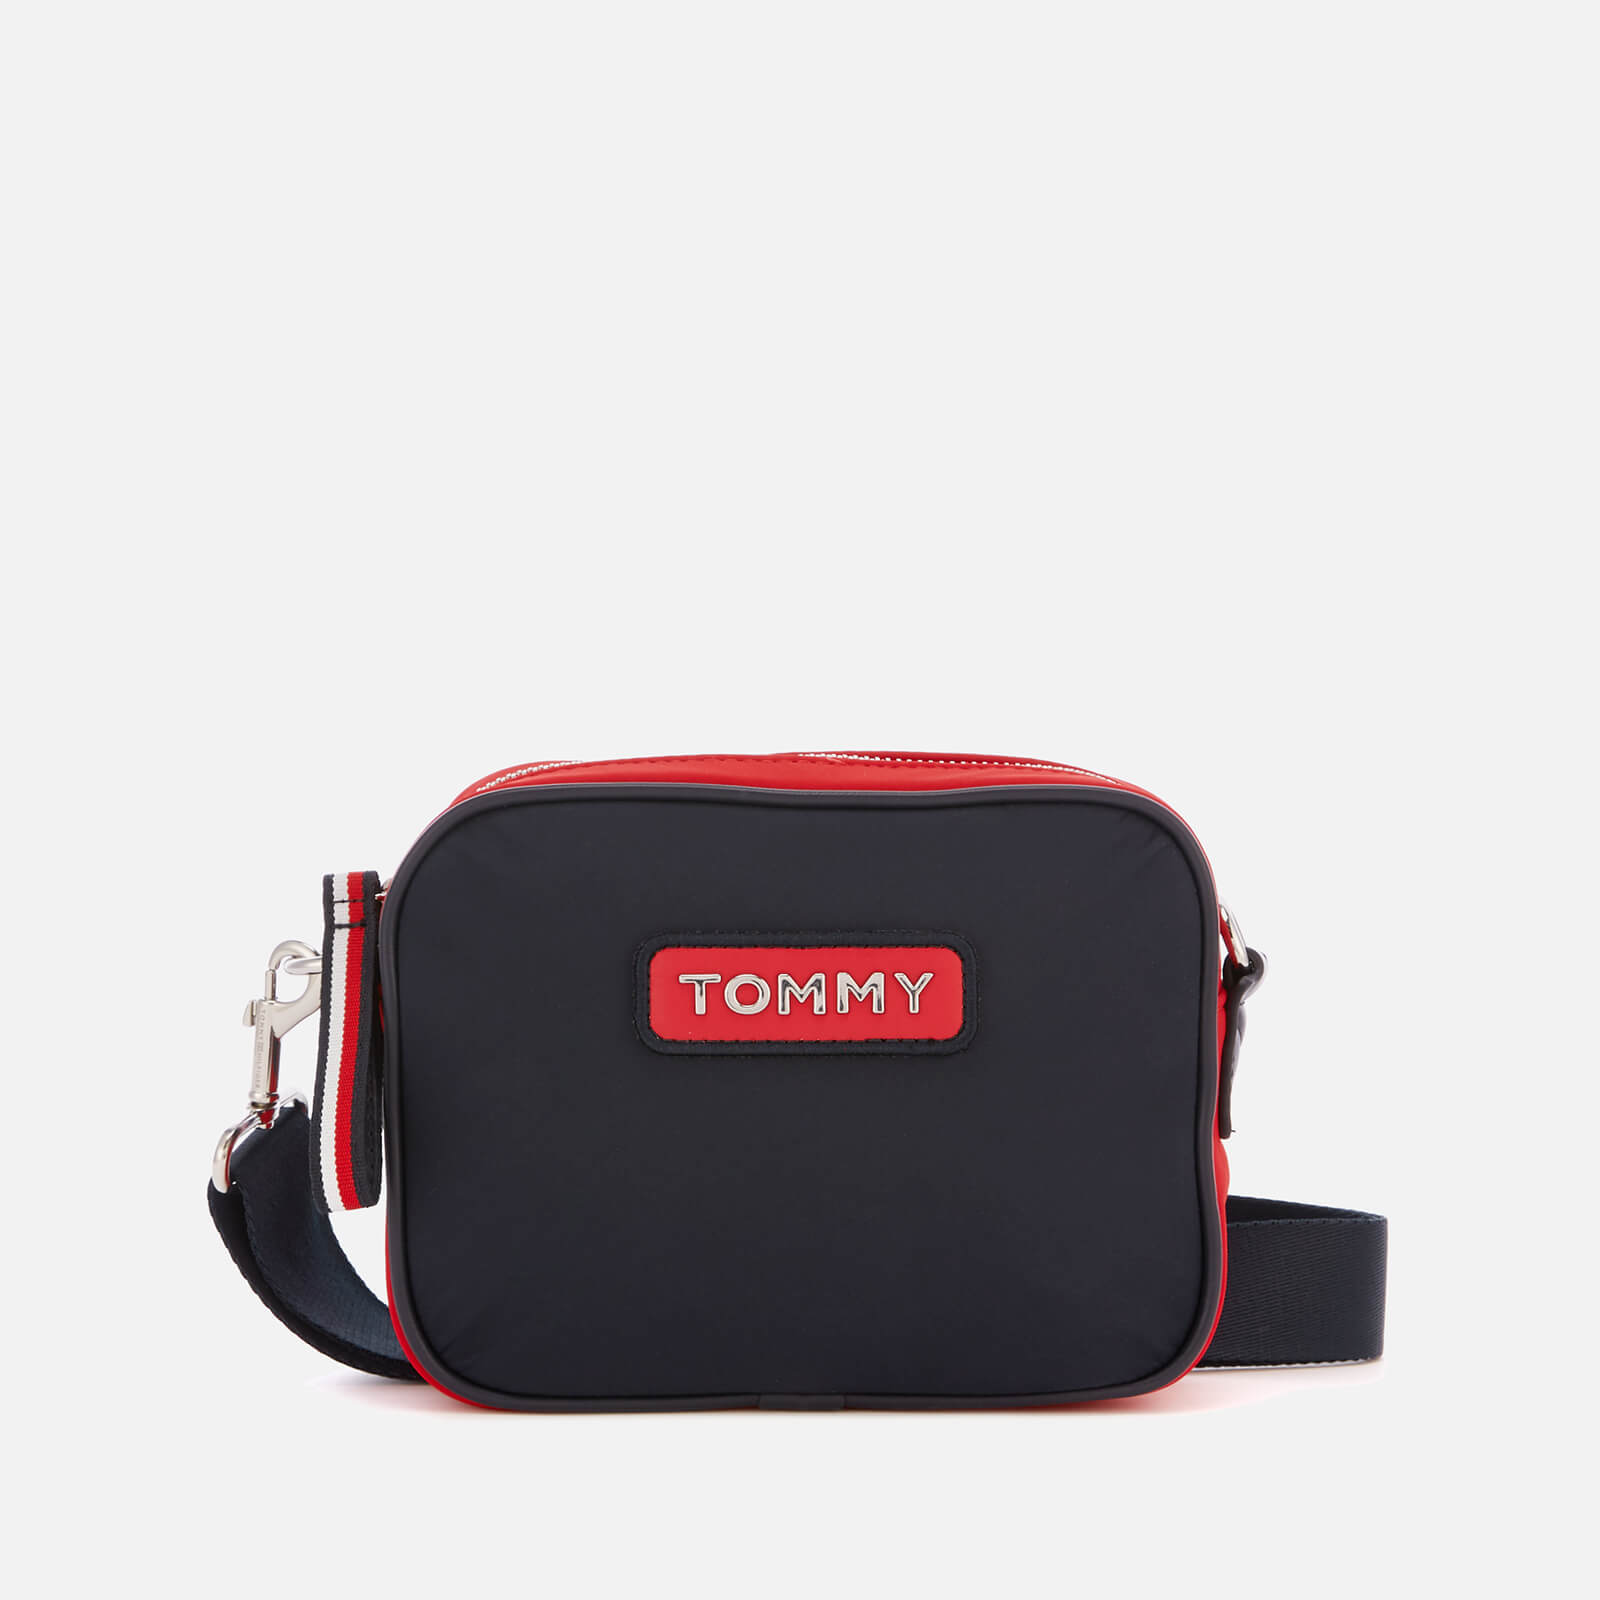 d8382249a5ea Tommy Hilfiger Women's Varsity Nylon Crossover Bag - Corporate Womens  Accessories | TheHut.com